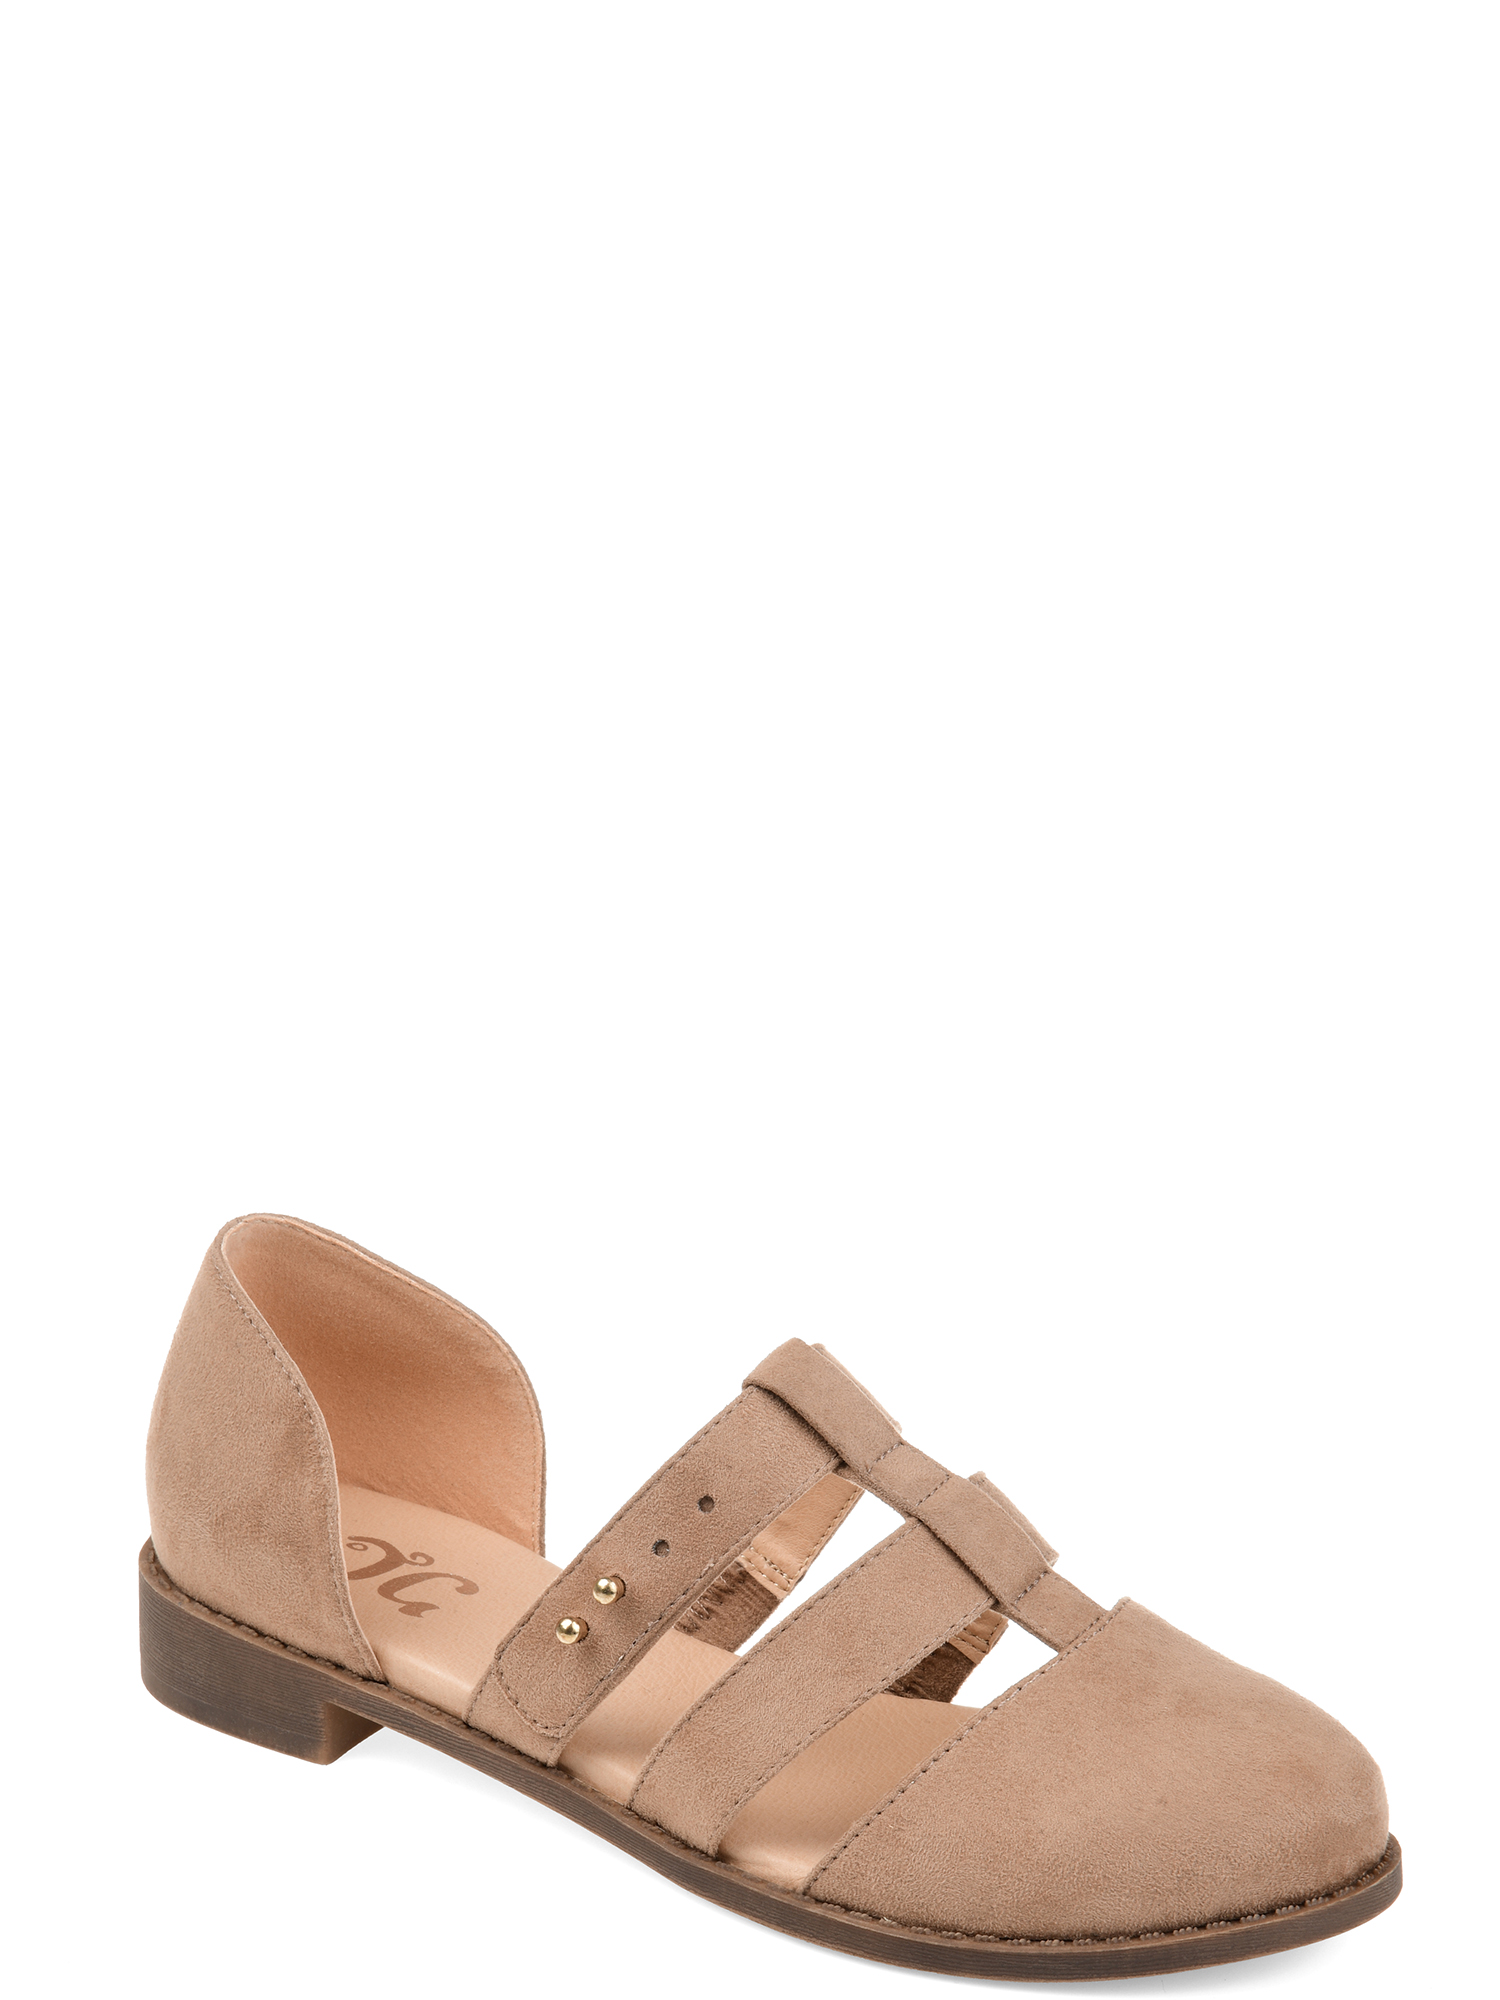 Womens Caged Round Toe Flats